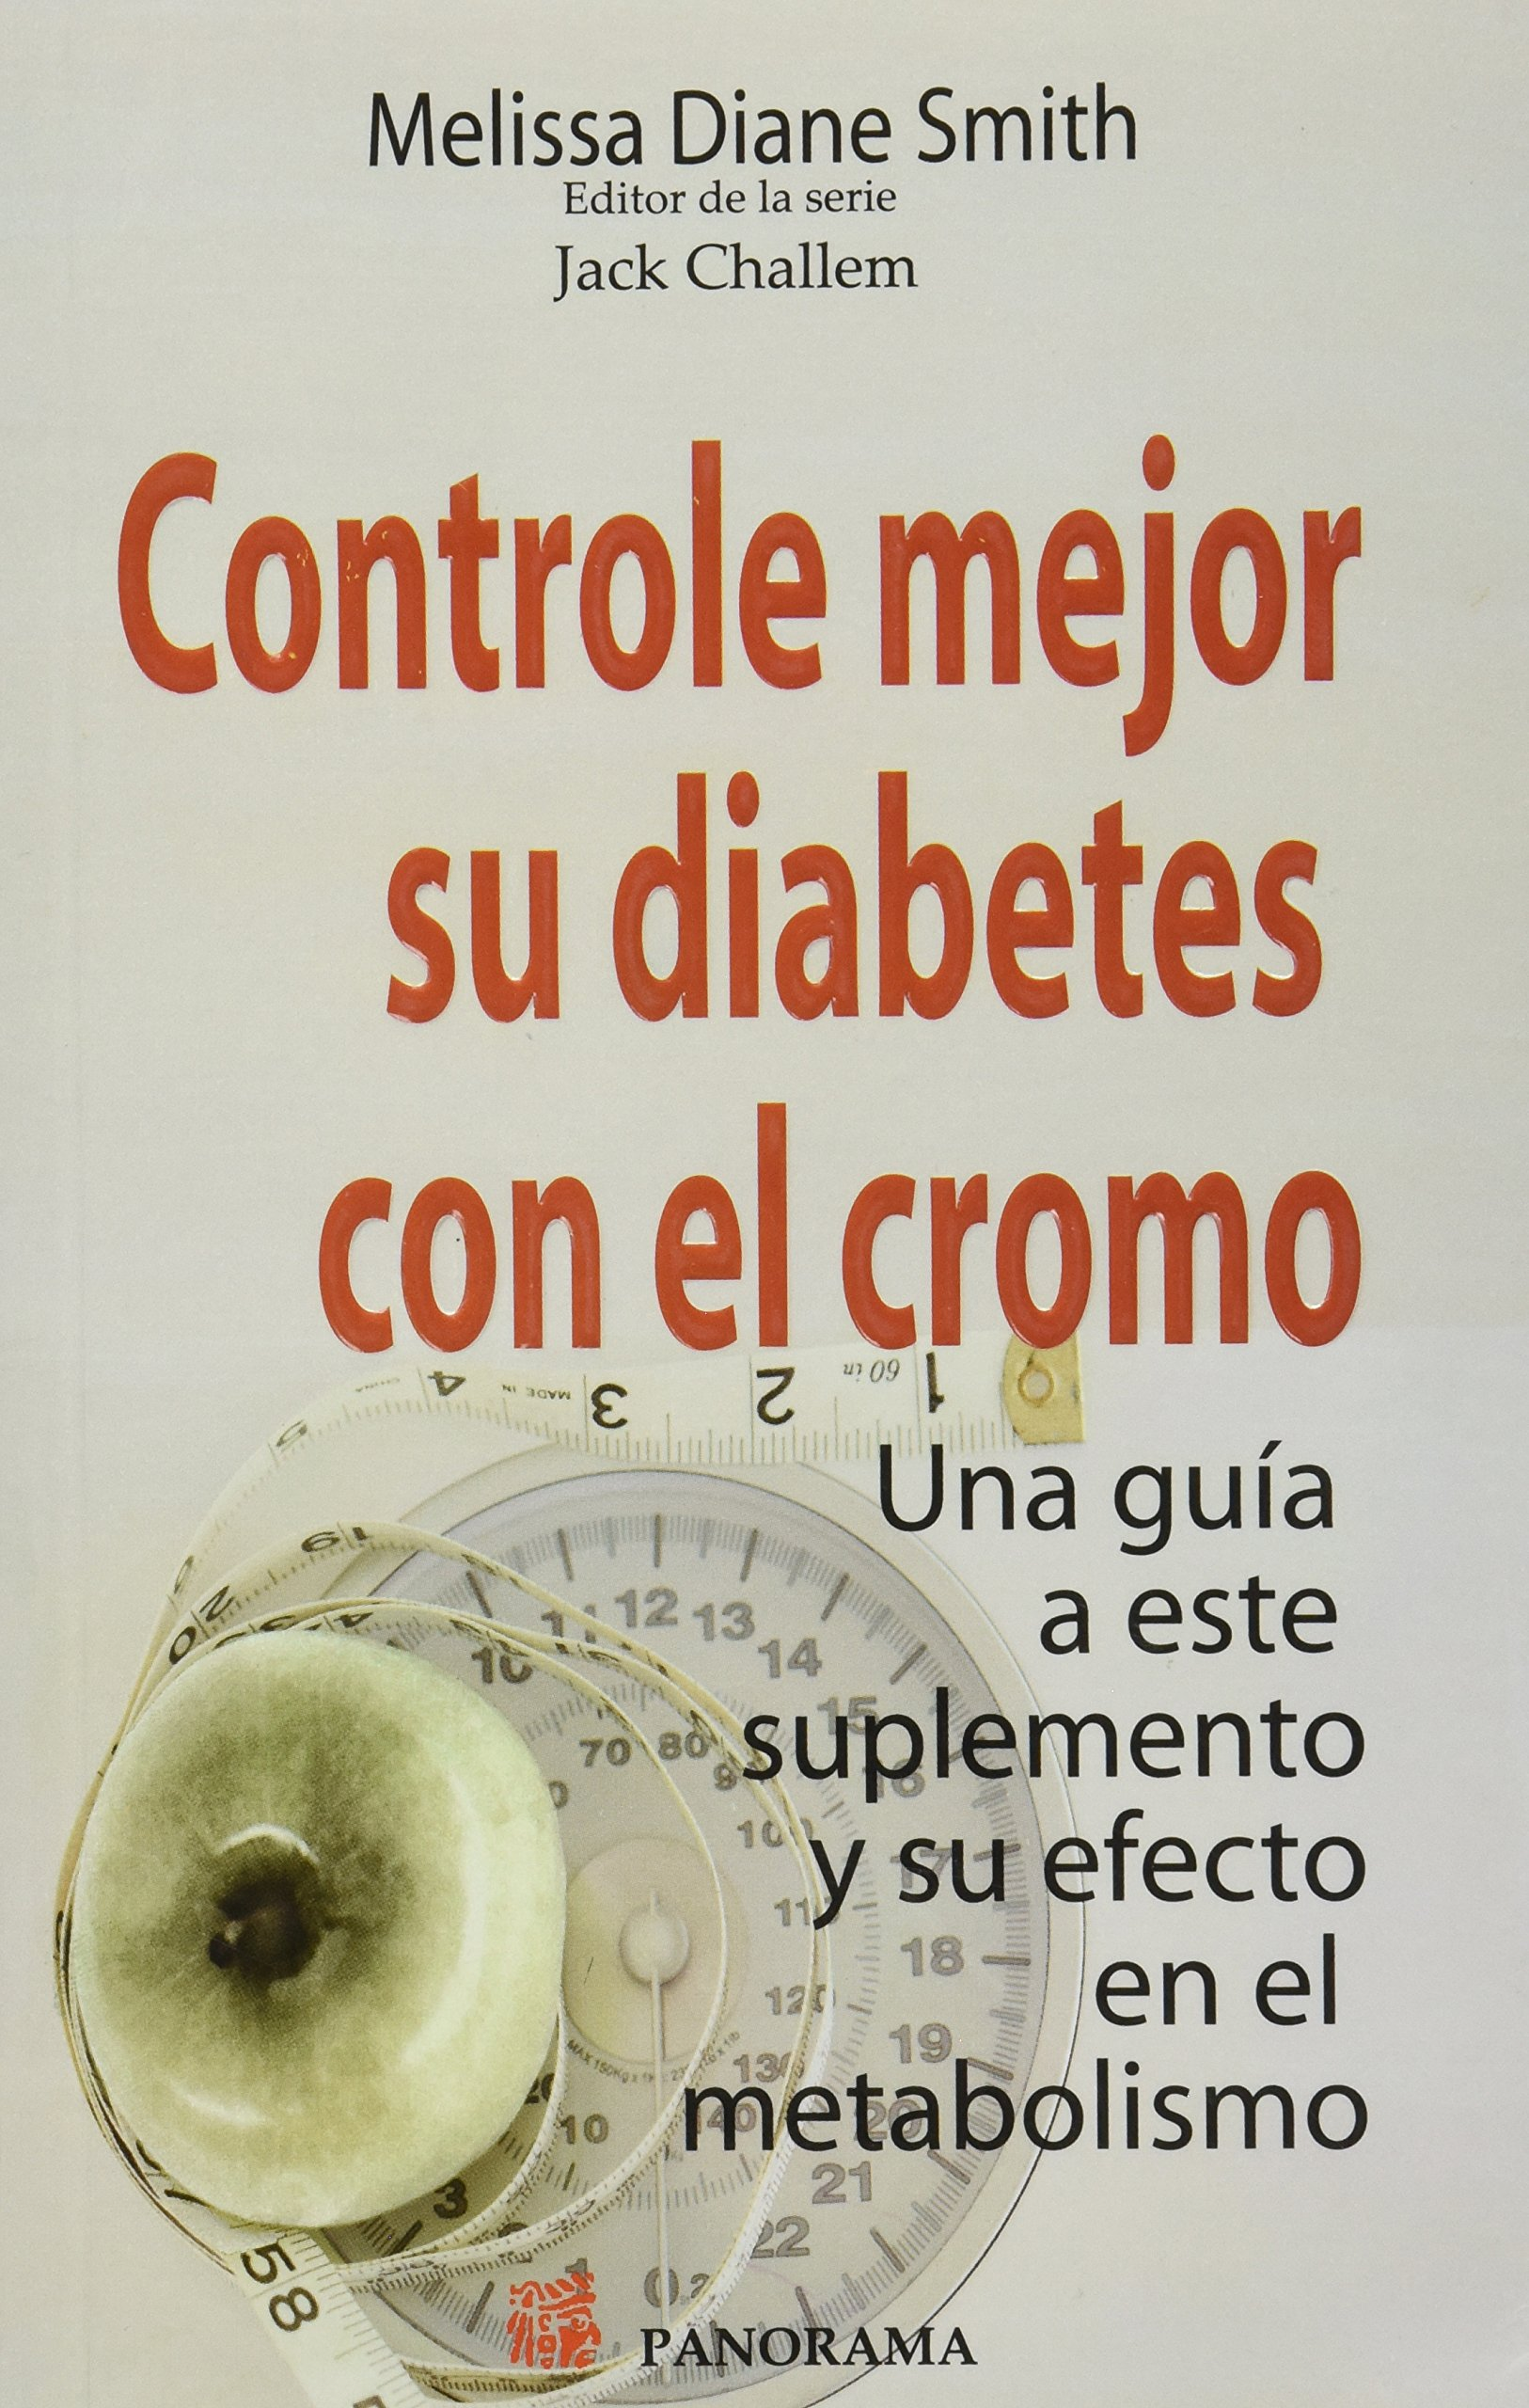 Controle mejor su diabetes con el cromo / Control your diabetes with chromium (Spanish Edition): Melissa Diane Smith: 9786074522730: Amazon.com: Books